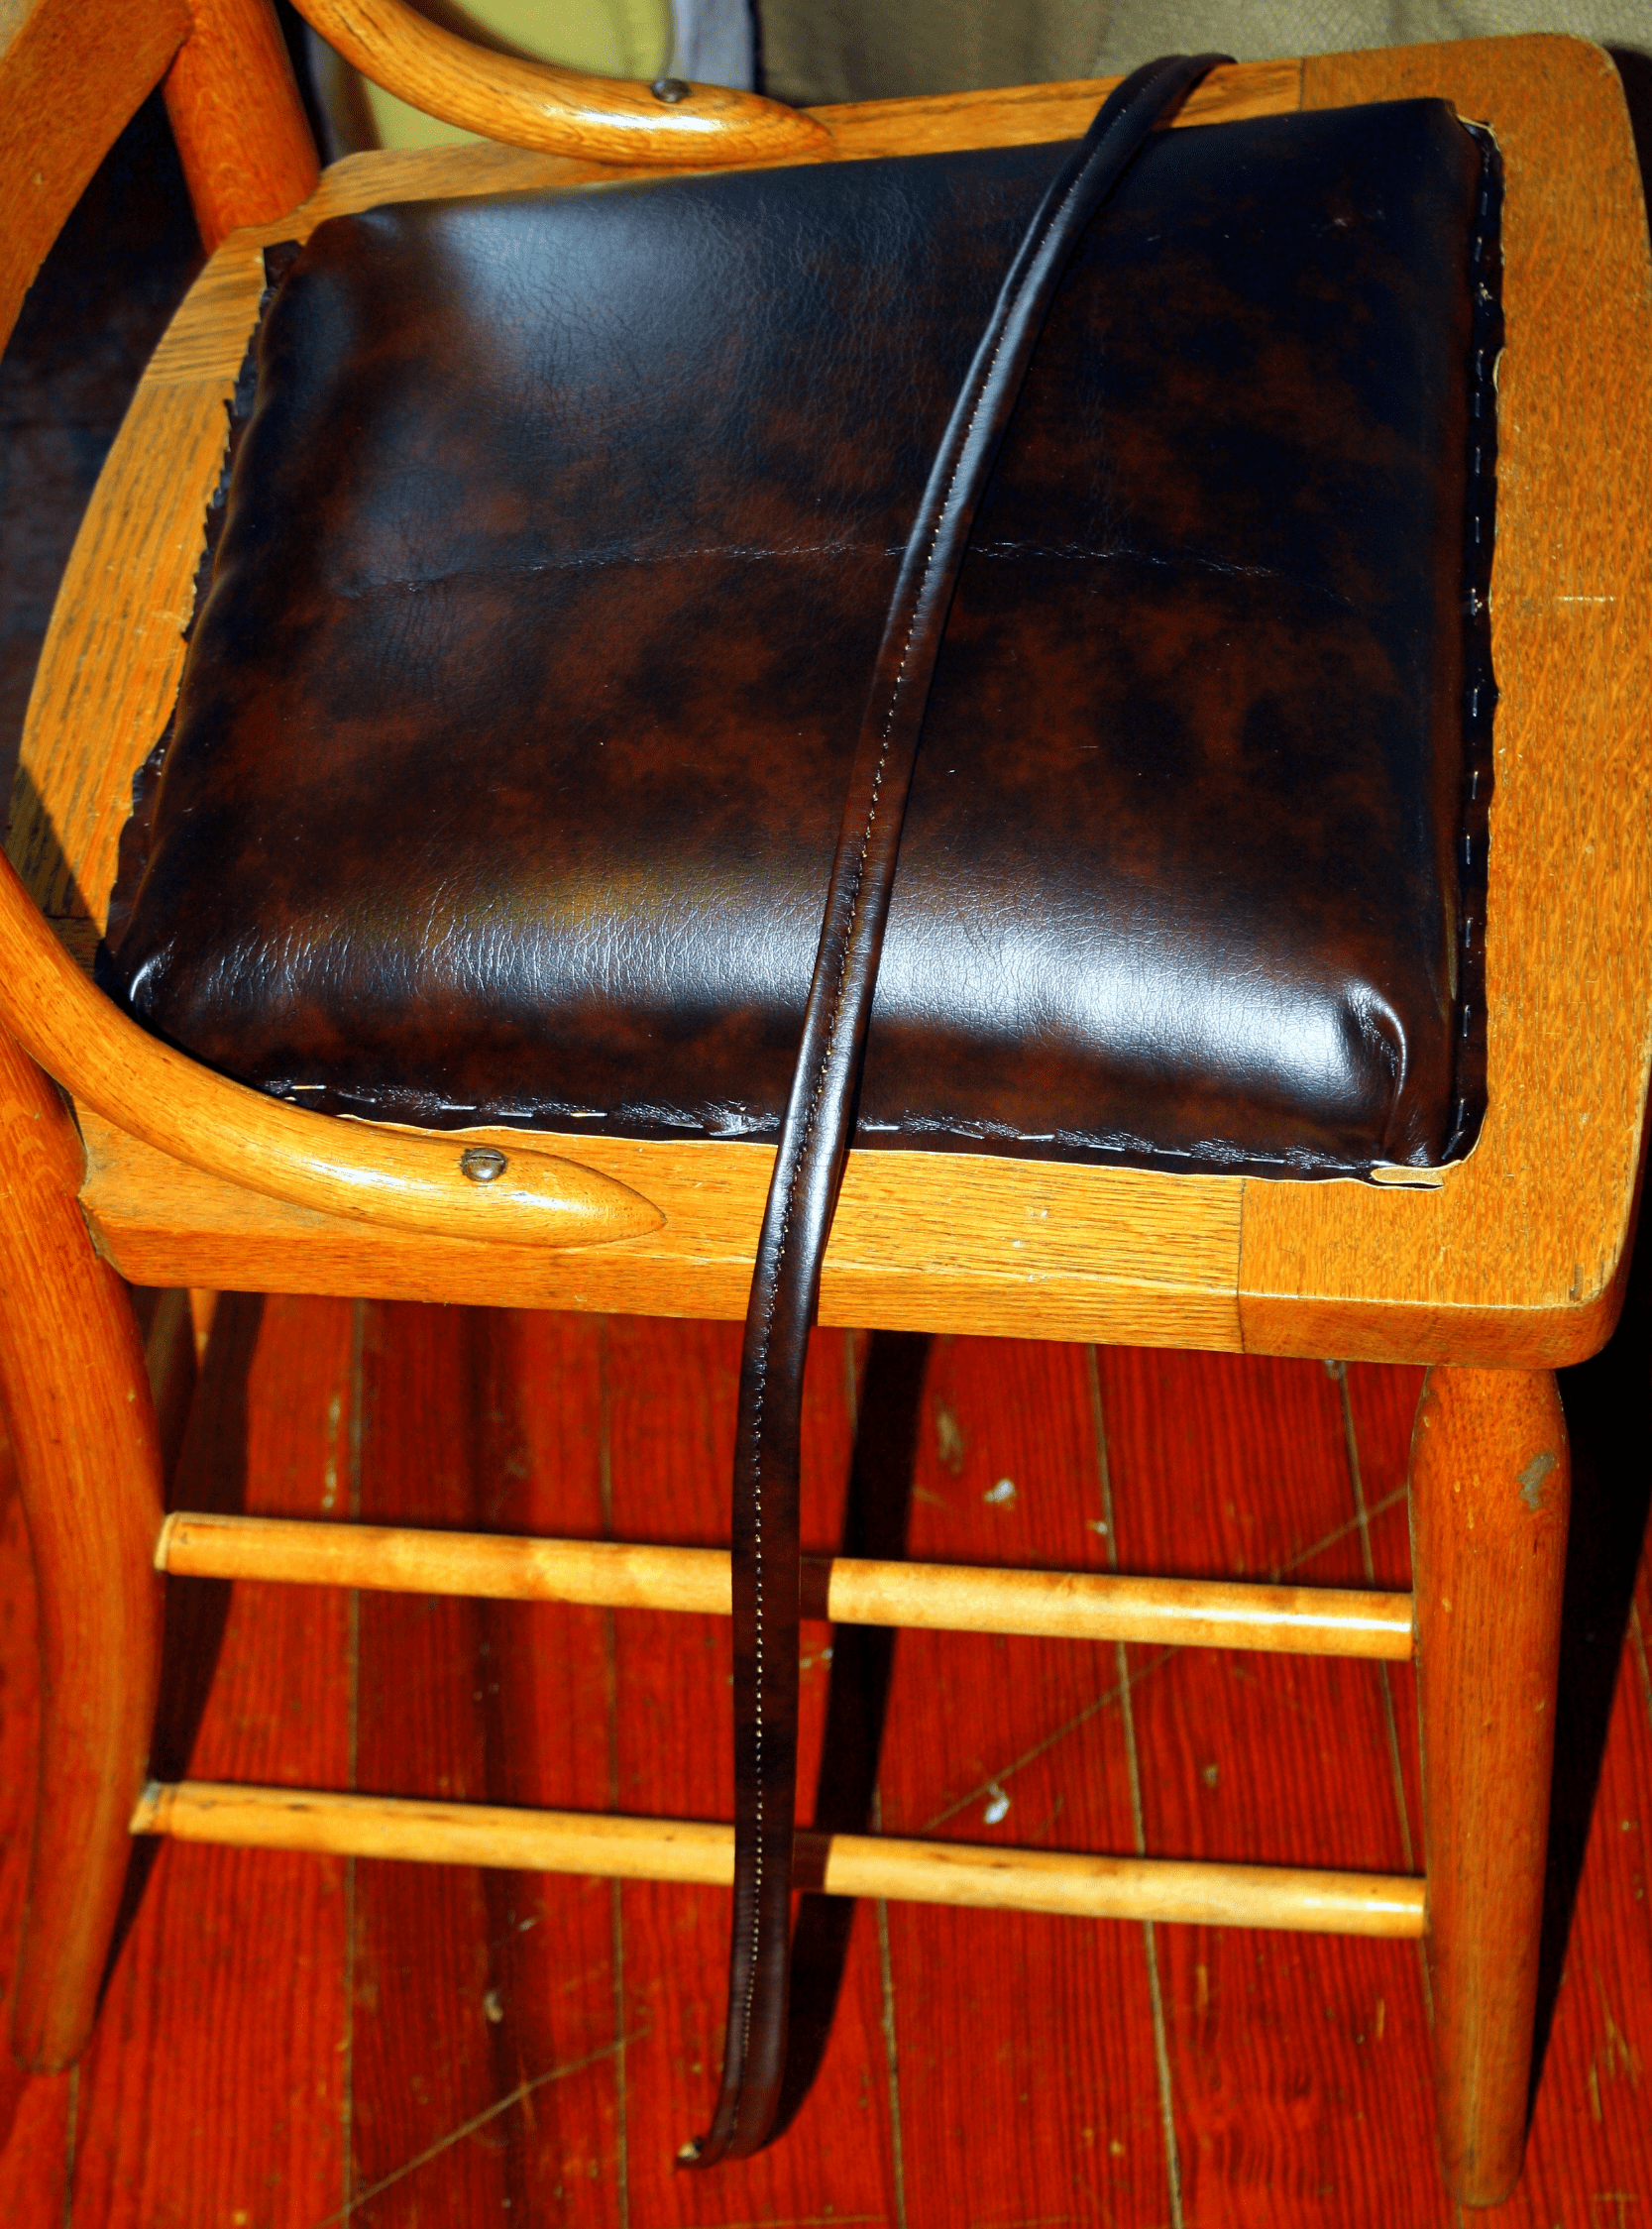 how to replace cane back chair with fabric santa covers uk upholstery 101 broken caning a padded seat good bones for an in depth explanation of properly attach or vinyl see my june post on recover dining